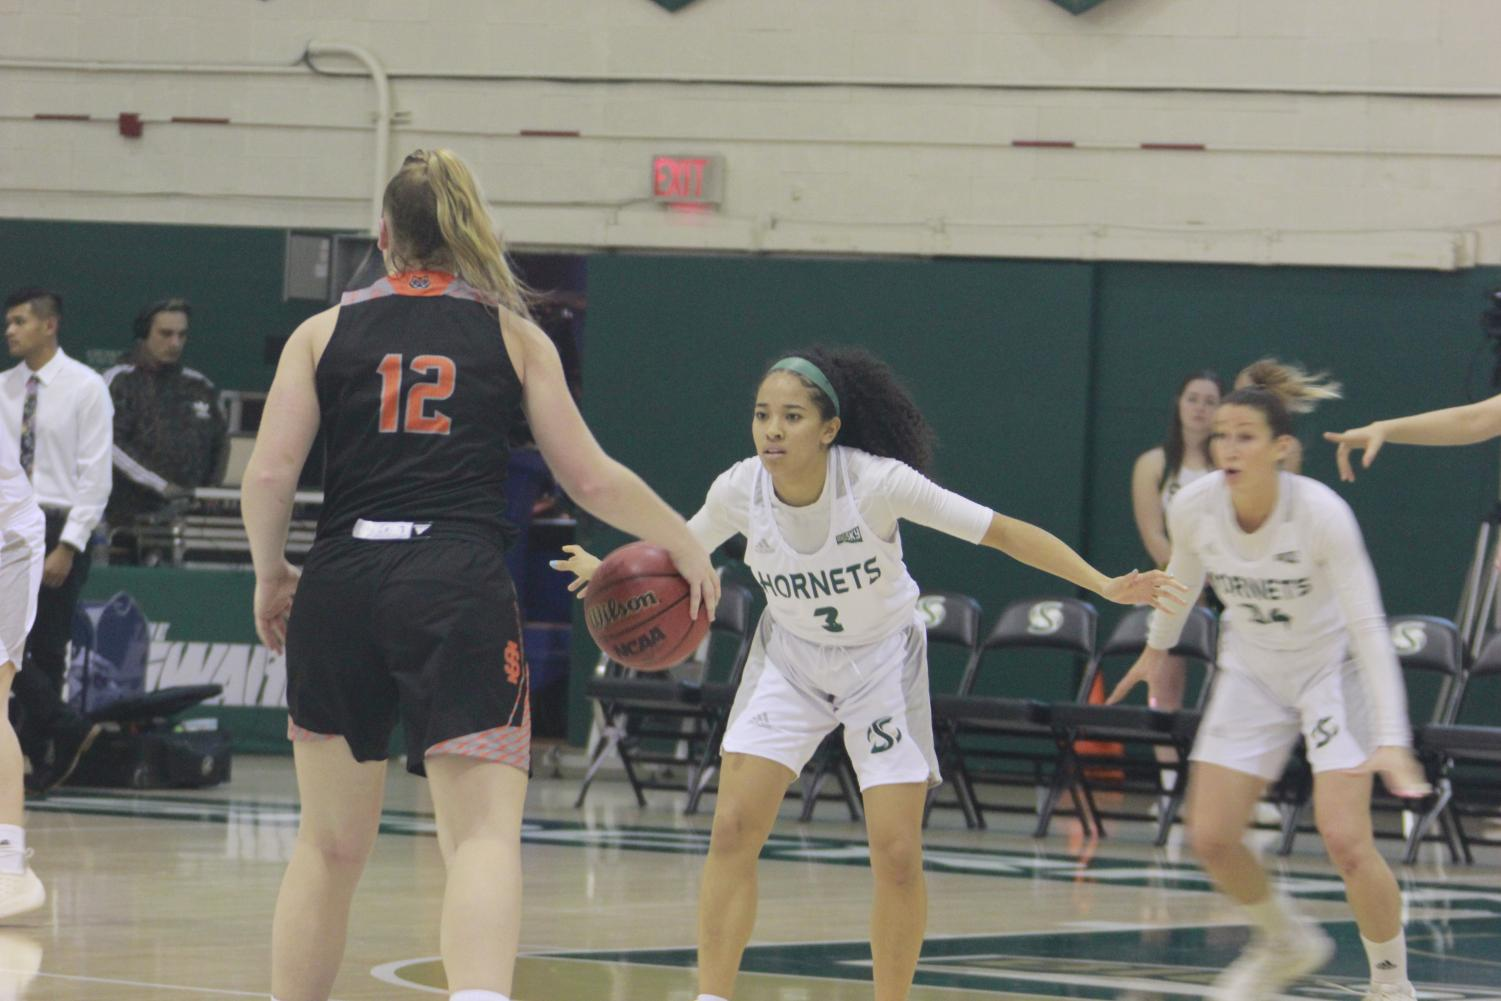 Sac State junior guard Tiara Scott defends Idaho State freshman guard Callie Bourne in a 56-42 loss to the Bengals on Jan. 31. Scott finished with 10 points, 4 assists and 4 steals.